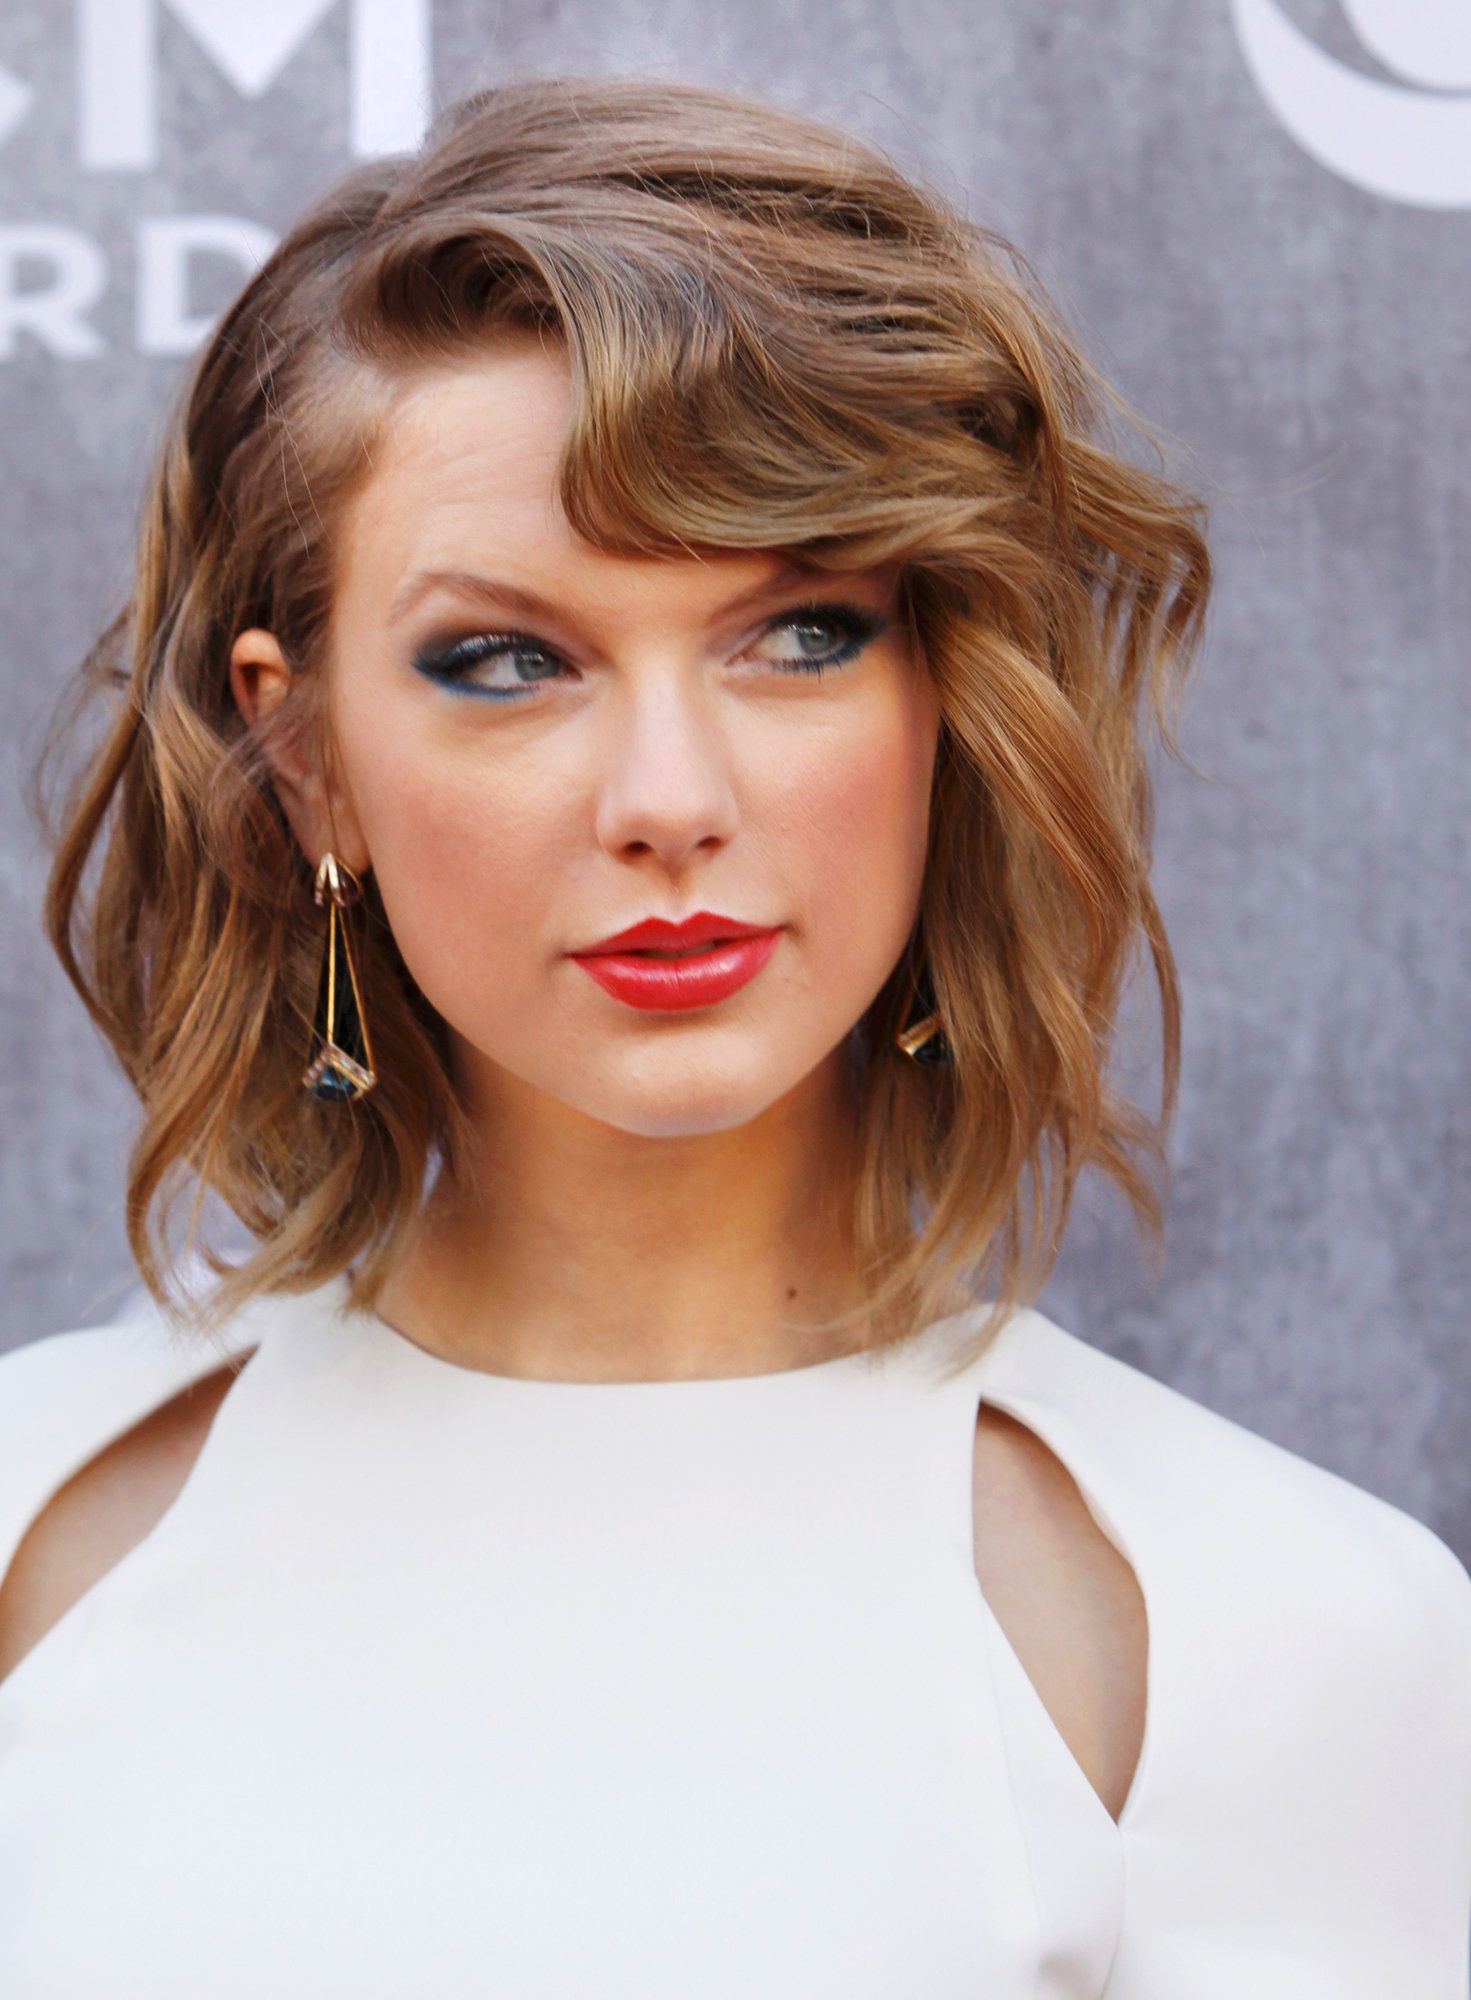 A Shortcut To Spring Hot Hair Styles Hair Styles Summer Hairstyles